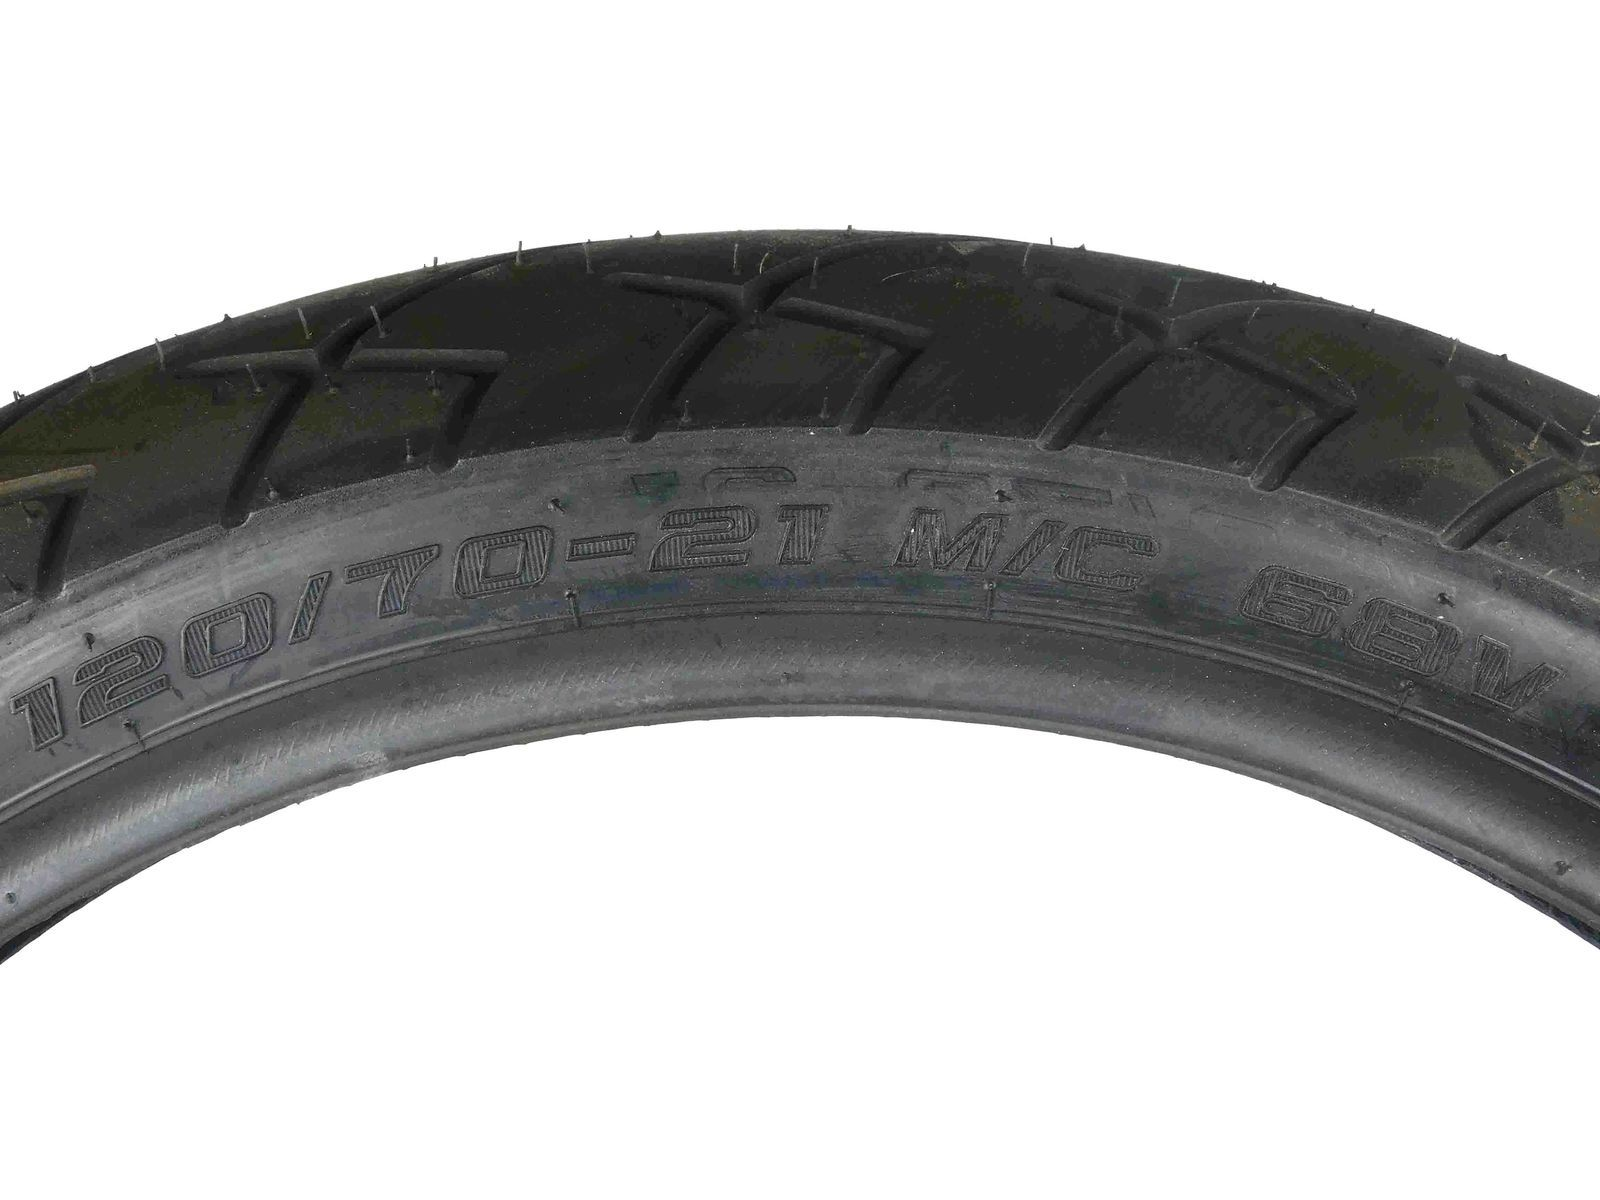 Full-Bore-120-70-21-Front-150-90-15-Rear-Set-Cruiser-Motorcycle-Tires-image-3